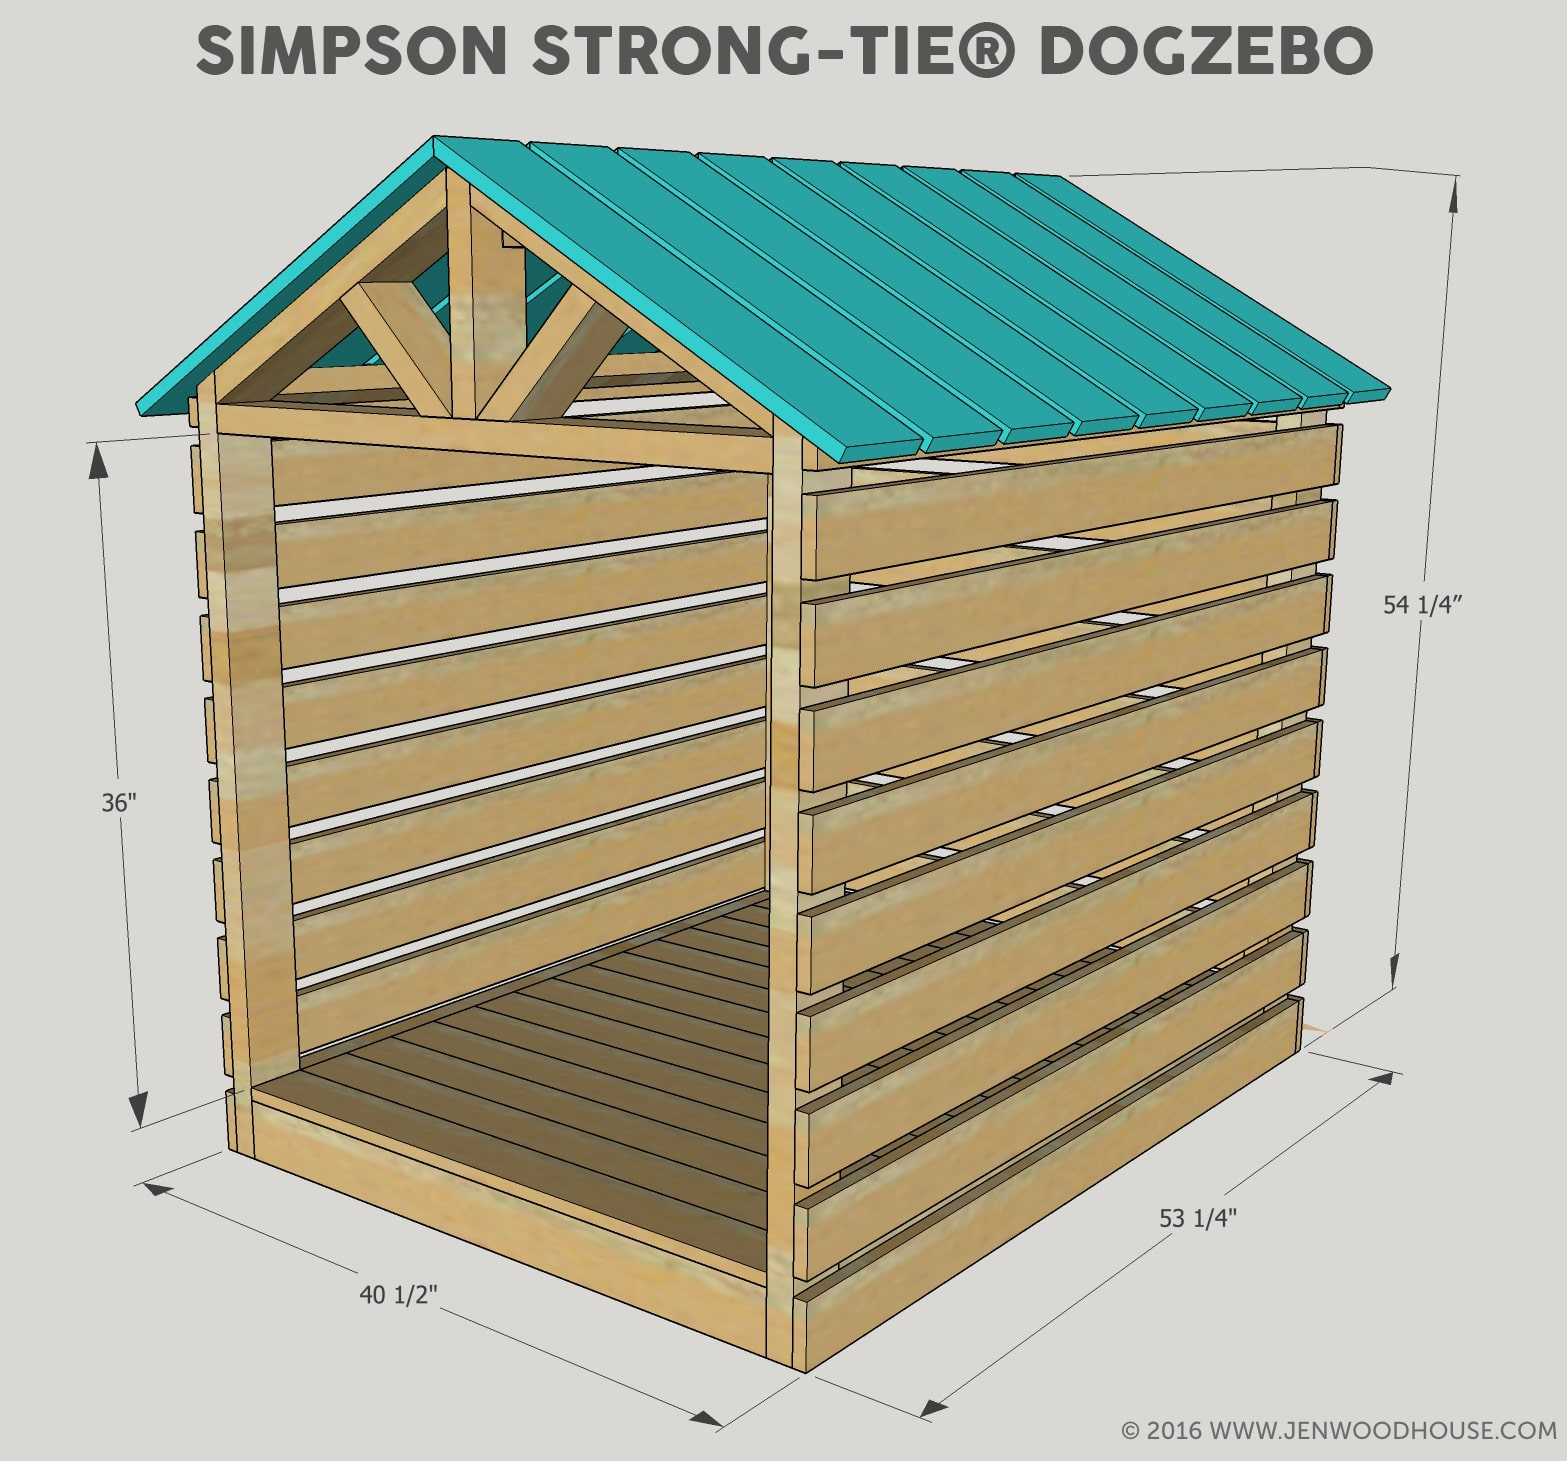 Diy Doghouse Gazebo